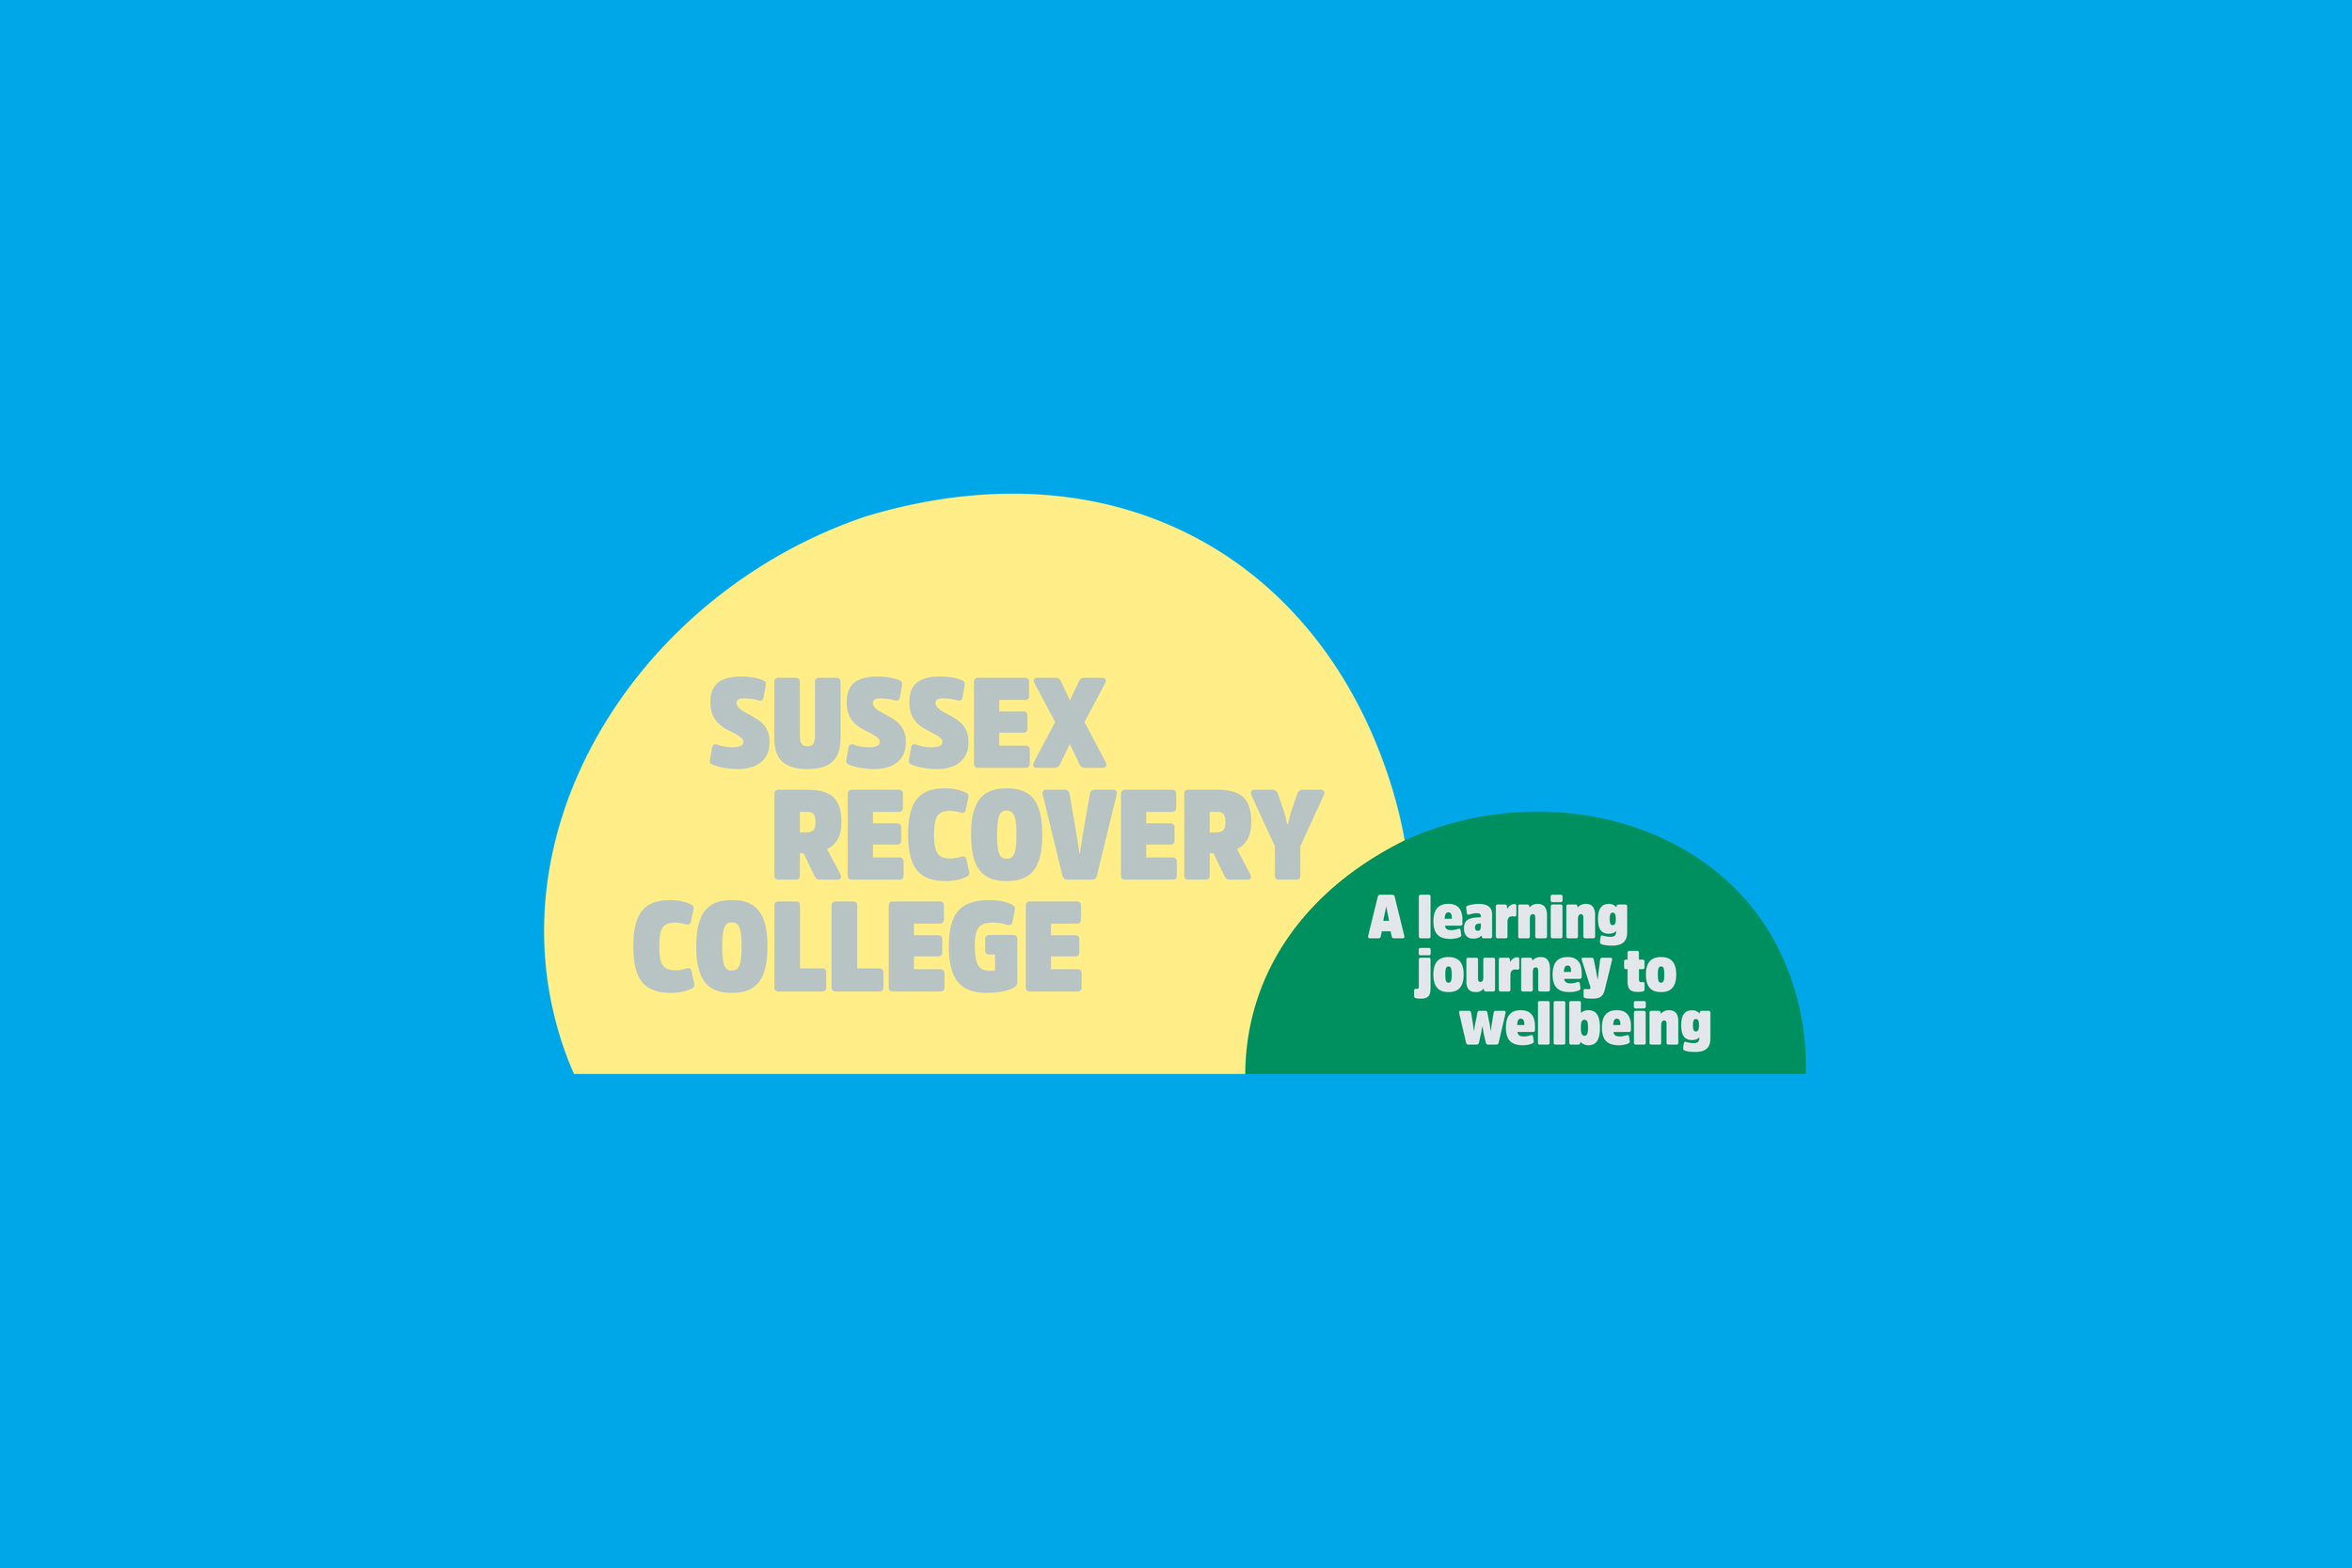 Sussex Recovery College-04.jpg